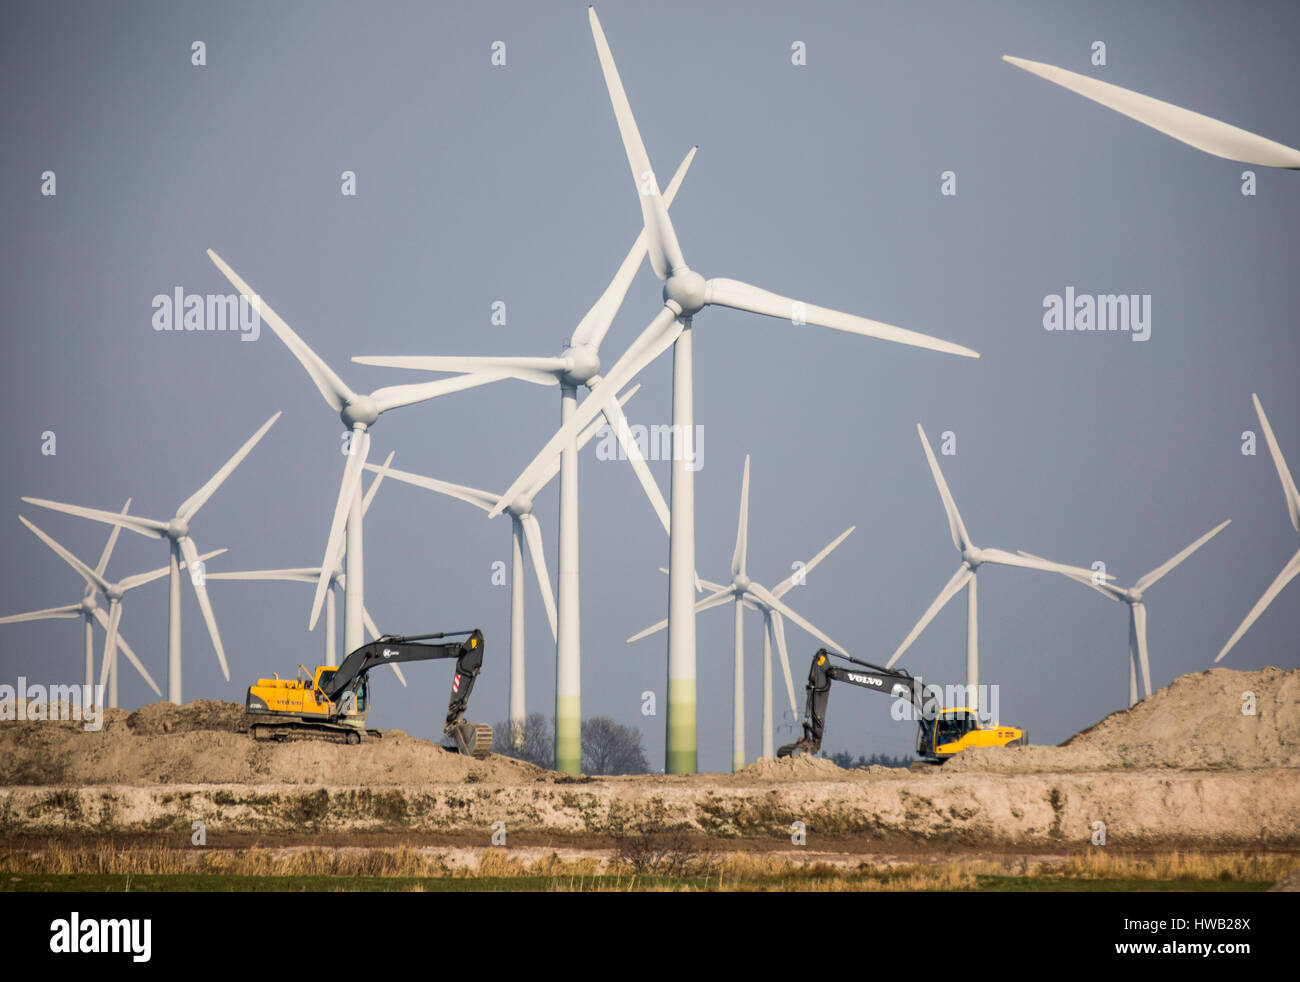 Huge wind energy power plant in northern Germany, east Frisia, North Sea coast, construction, - Stock Image